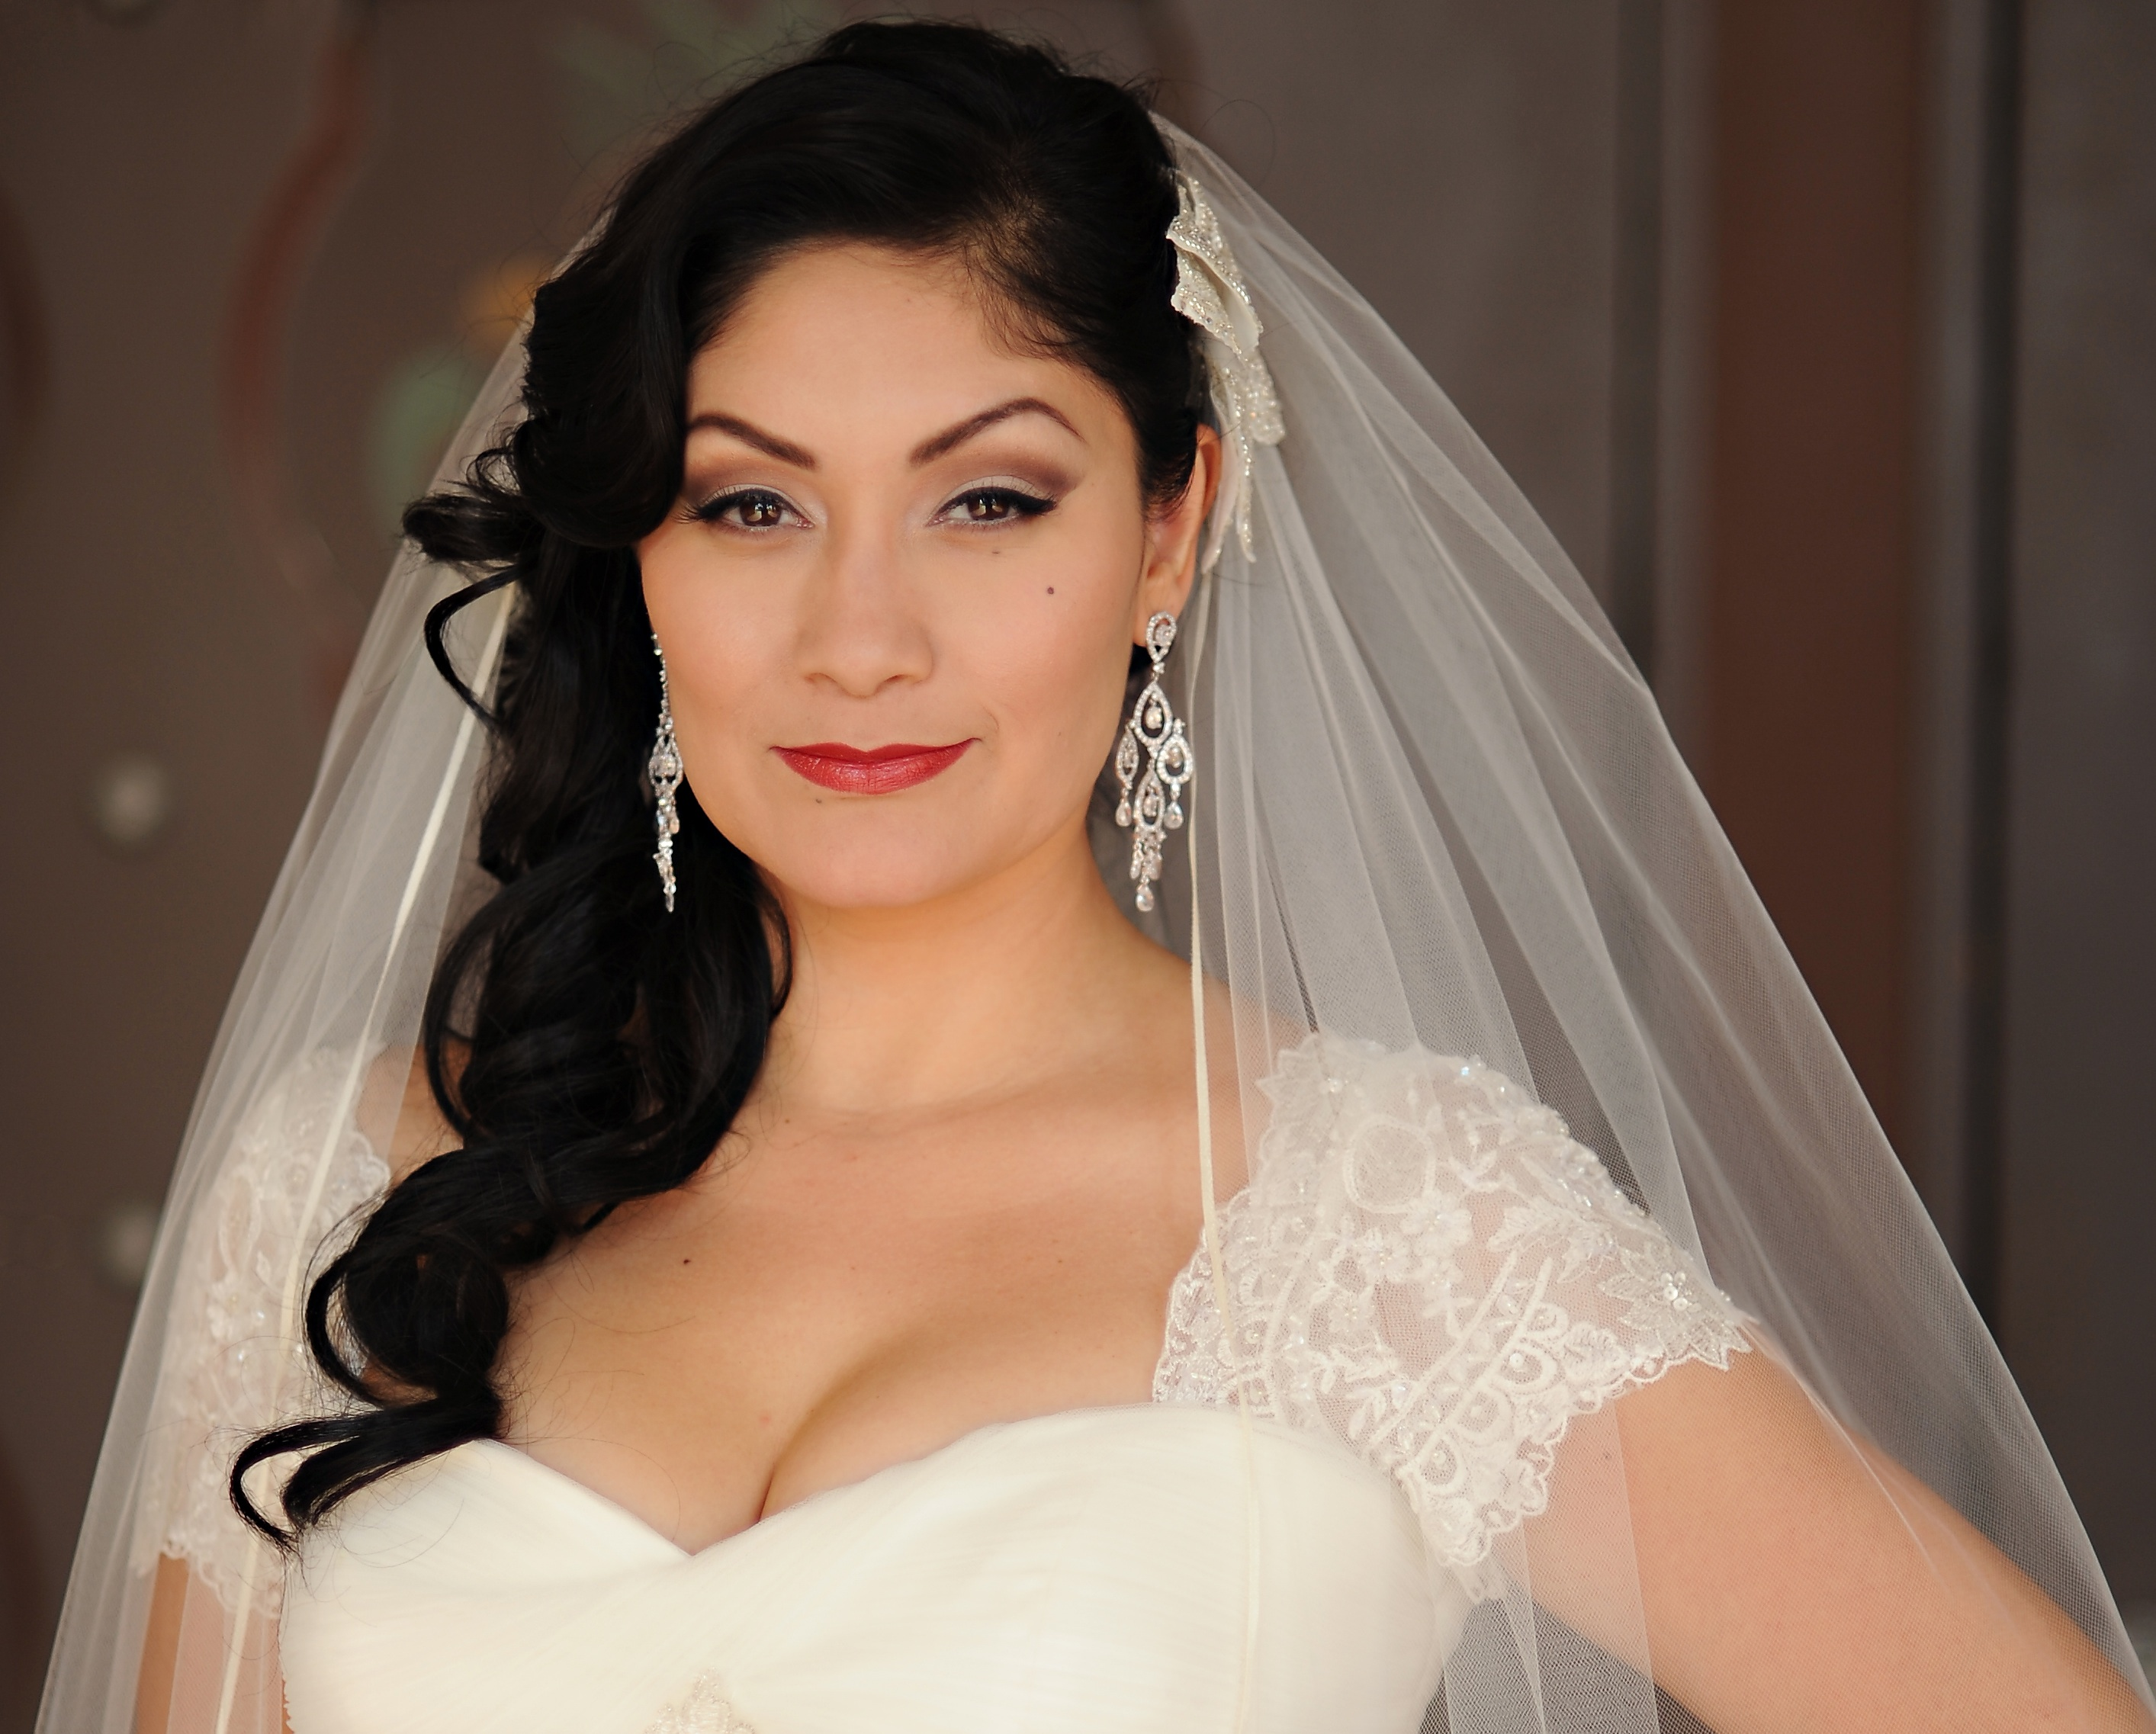 Makeup Tips, Wedding Day Makeup Tips - Inside Weddings